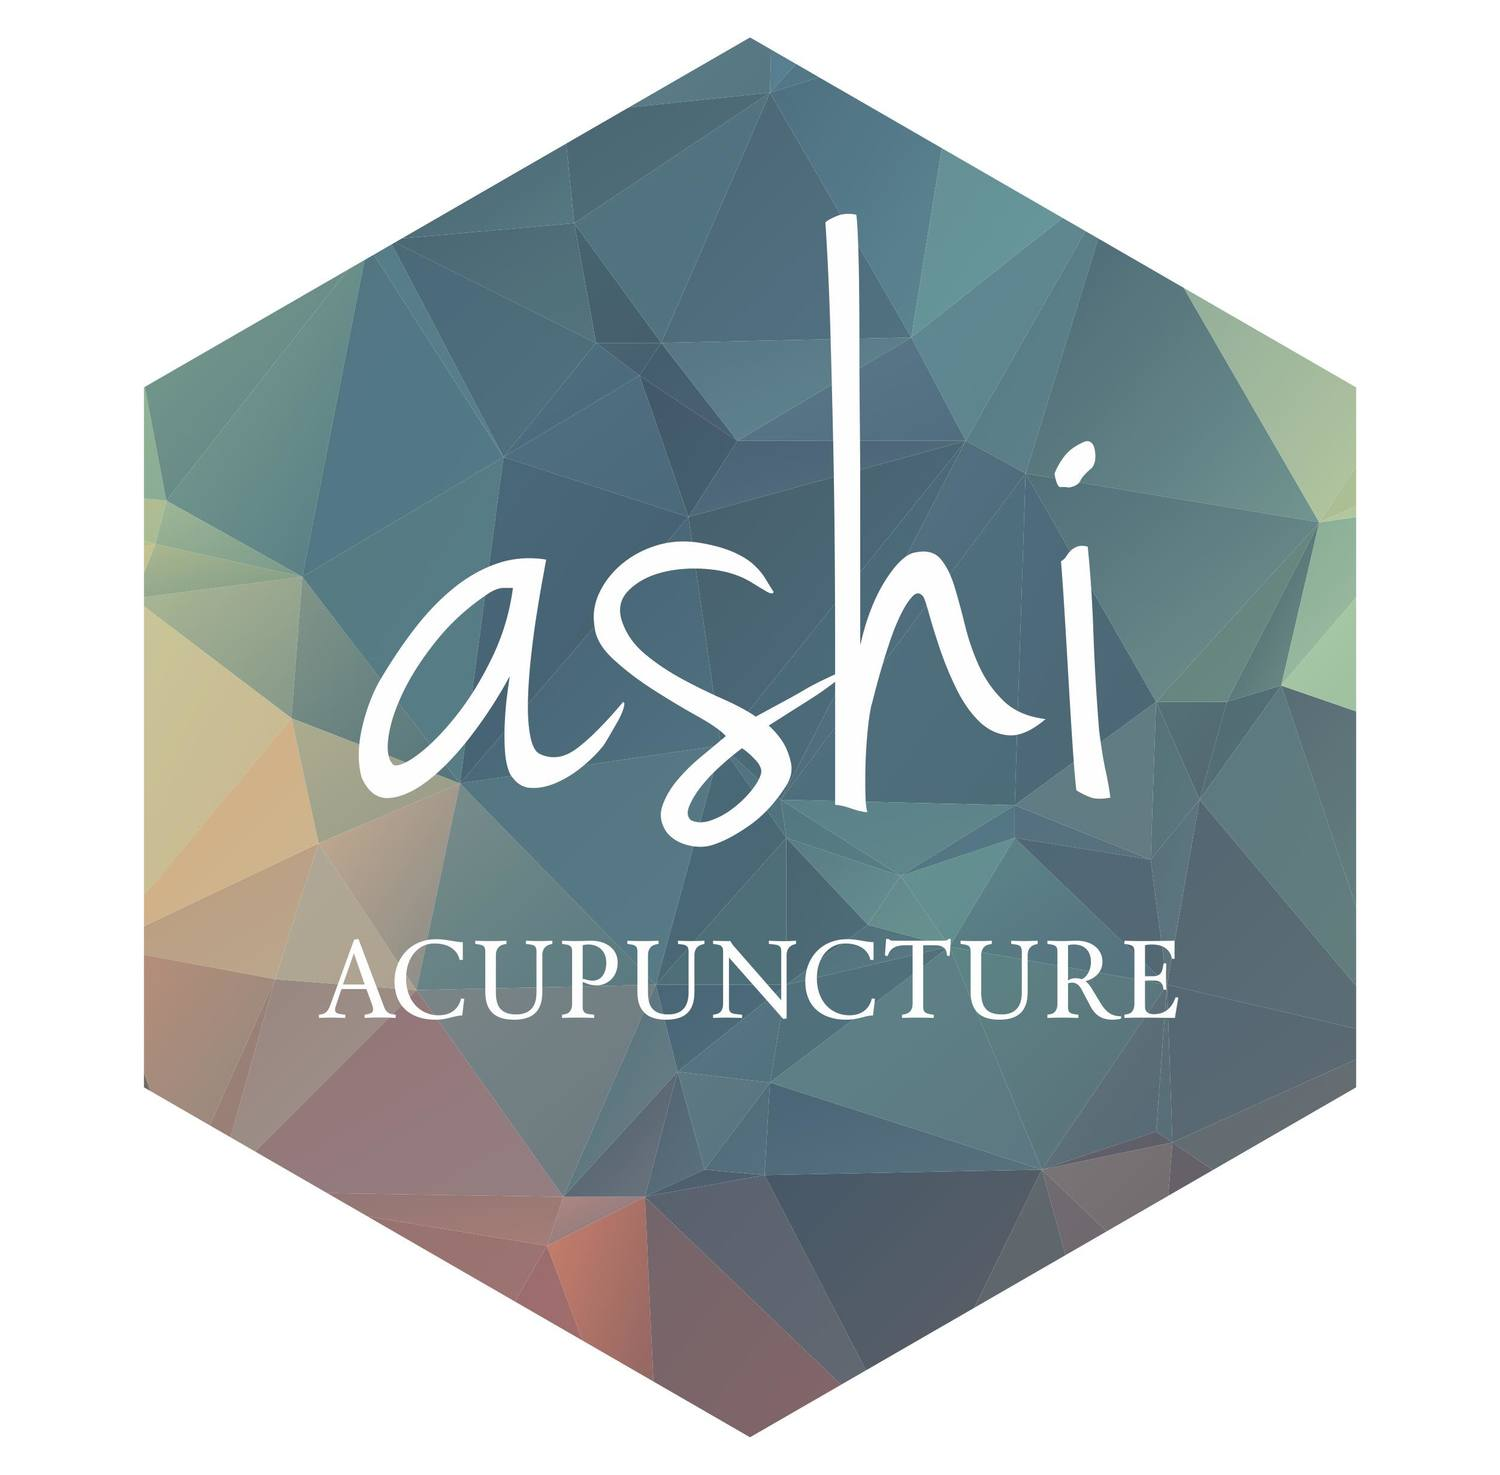 Ashi Acupuncture